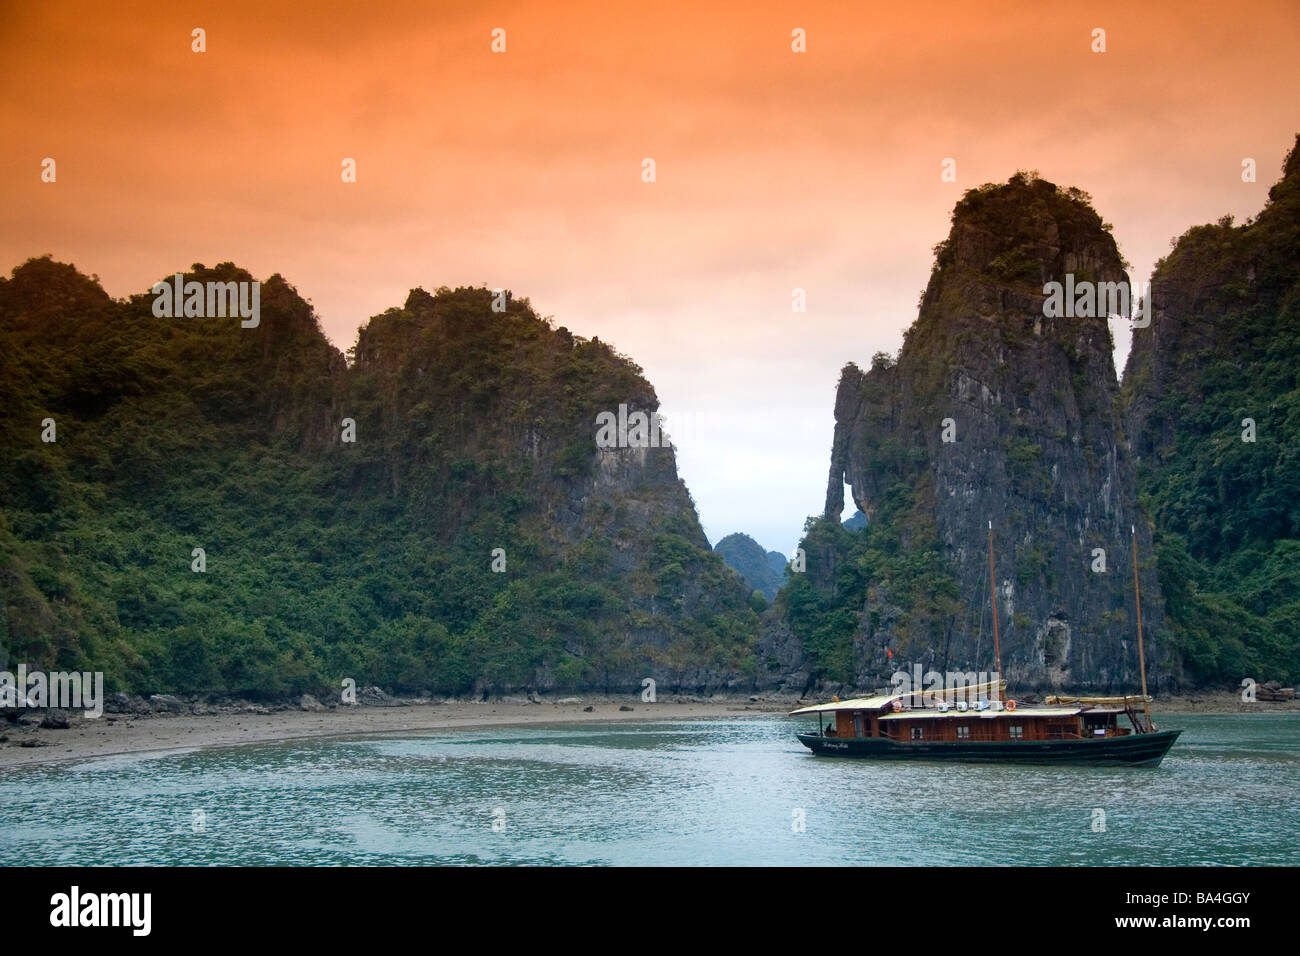 Scenic views of limestone karsts and tourist boats in Ha Long Bay Vietnam Stock Photo